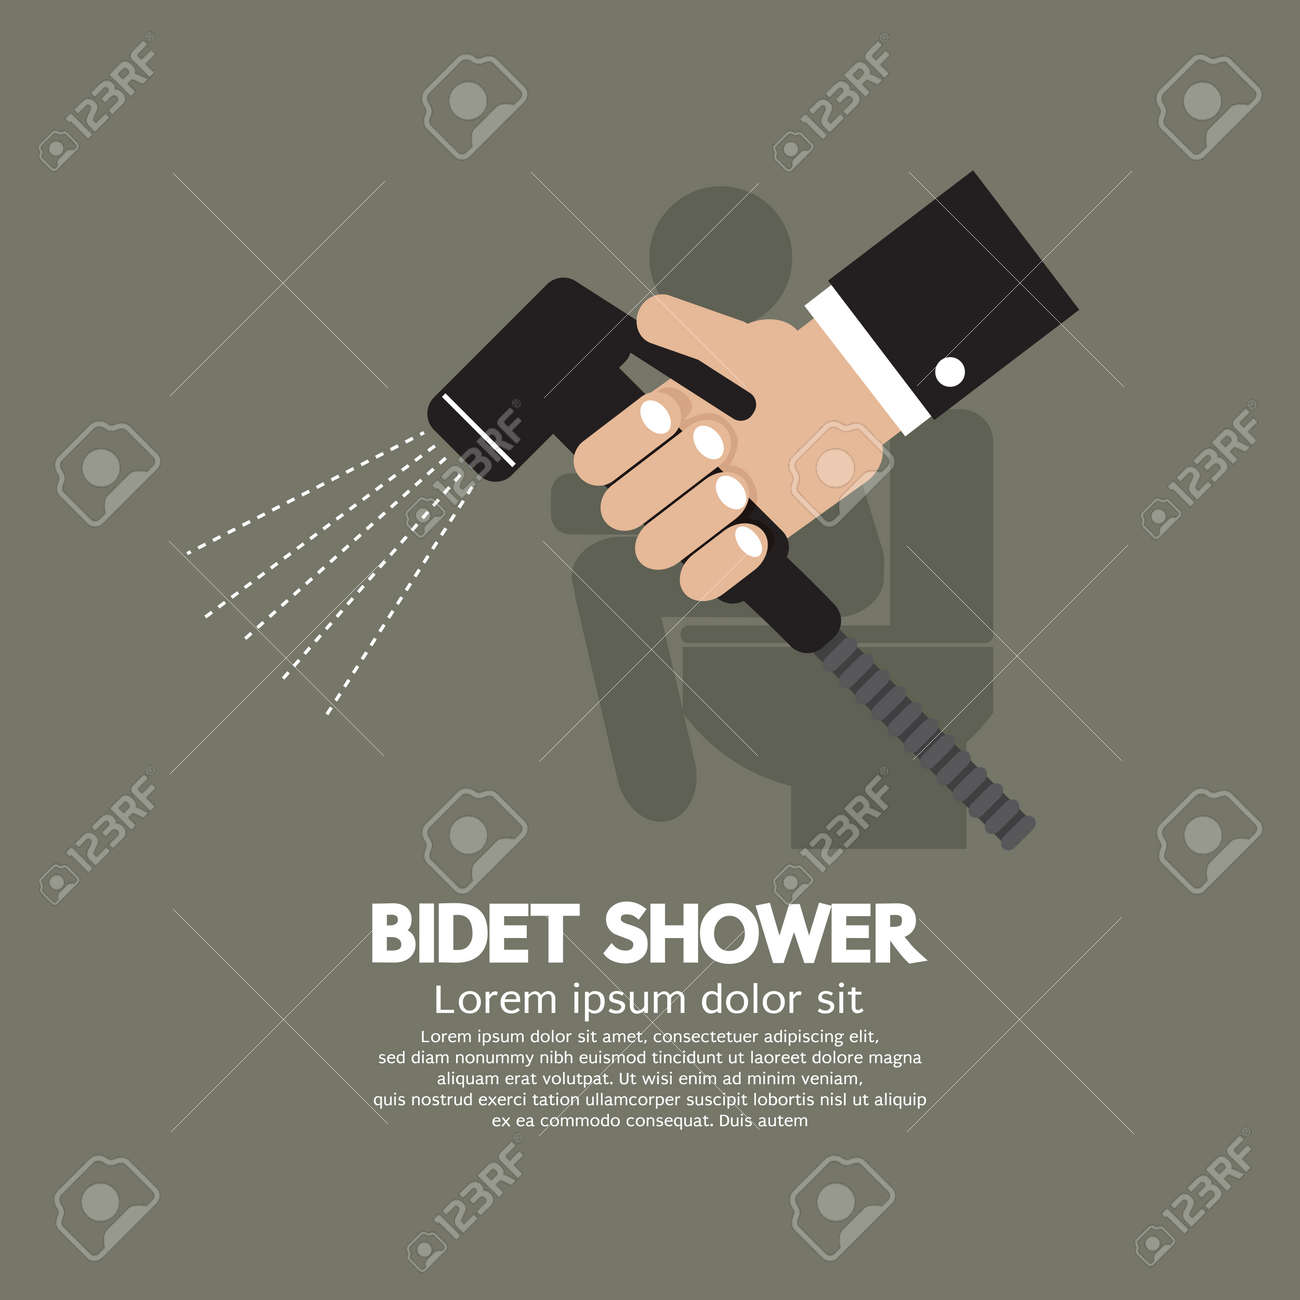 Hand Using A Bidet Shower Vector Illustration Royalty Free Cliparts Vectors And Stock Illustration Image 34257186